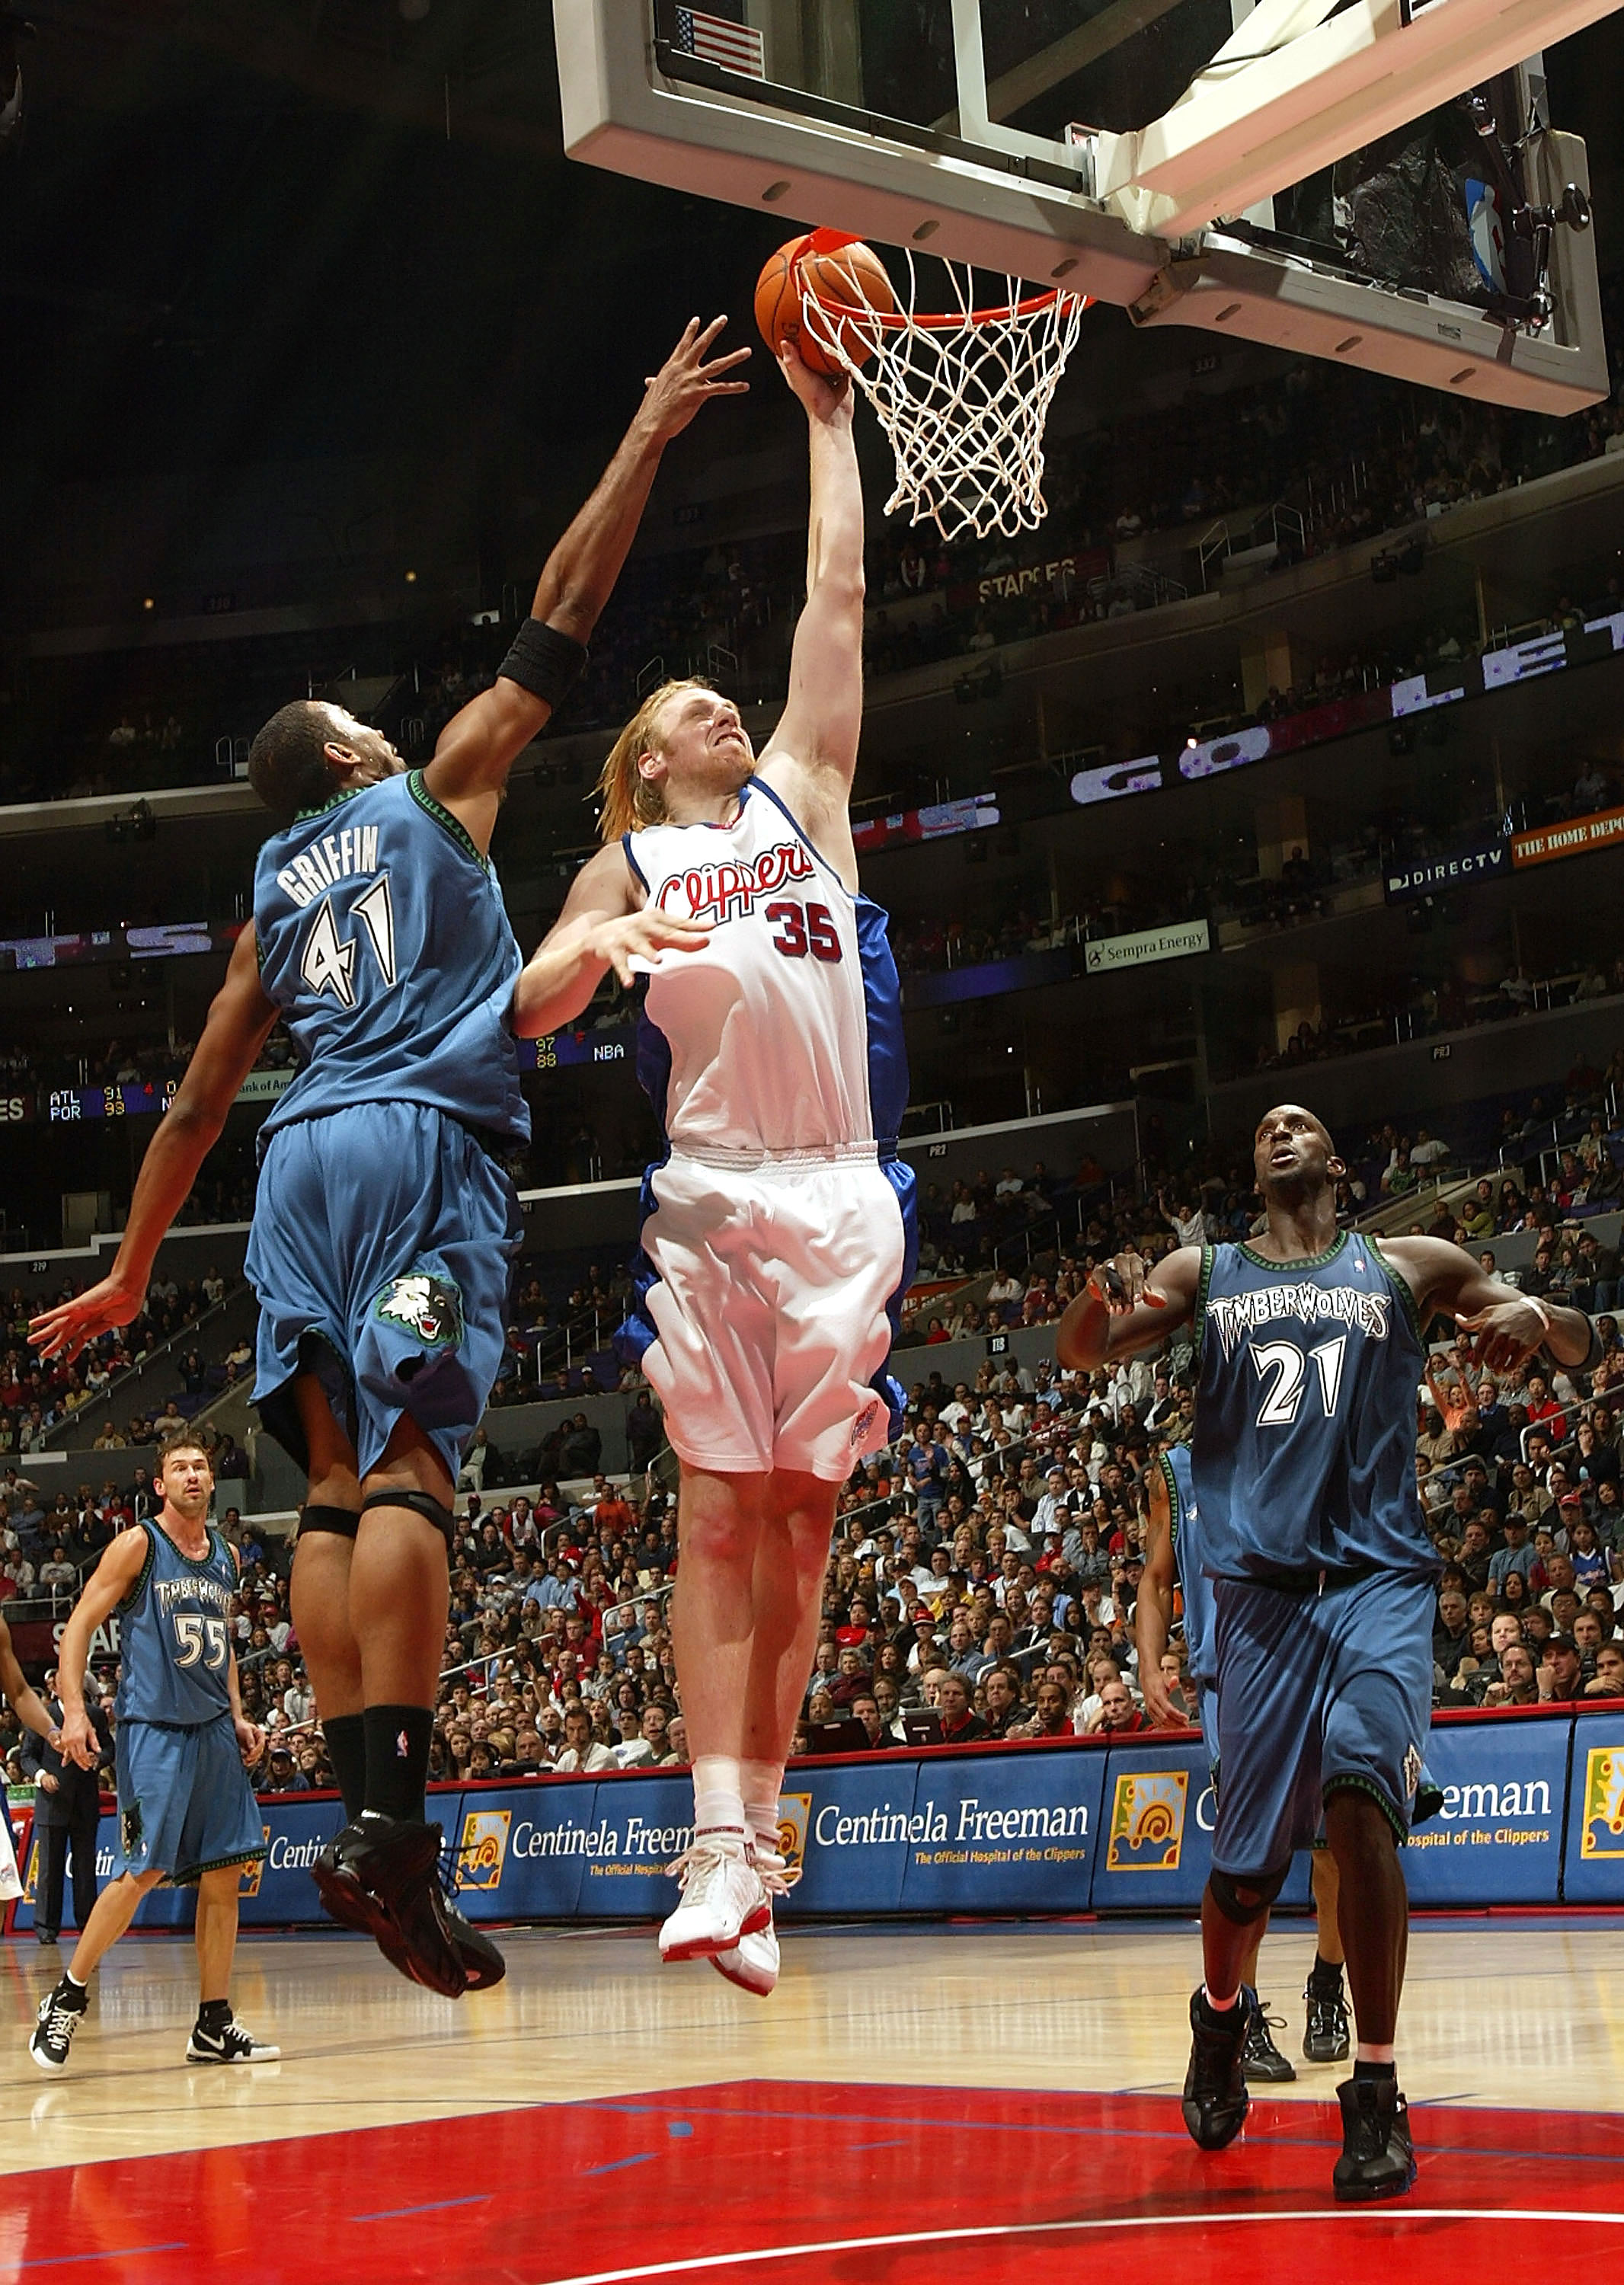 LOS ANGELES, CA - NOVEMBER 05:  Chris Kaman #35 of the Los Angeles Clippers drives to the basket for a dunk attempt between Eddie Griffin #41 (L) and Kevin Garnett #21 (R) of the Minnesota Timberwolves November 5, 2005 at Staples Center in Los Angeles, Ca